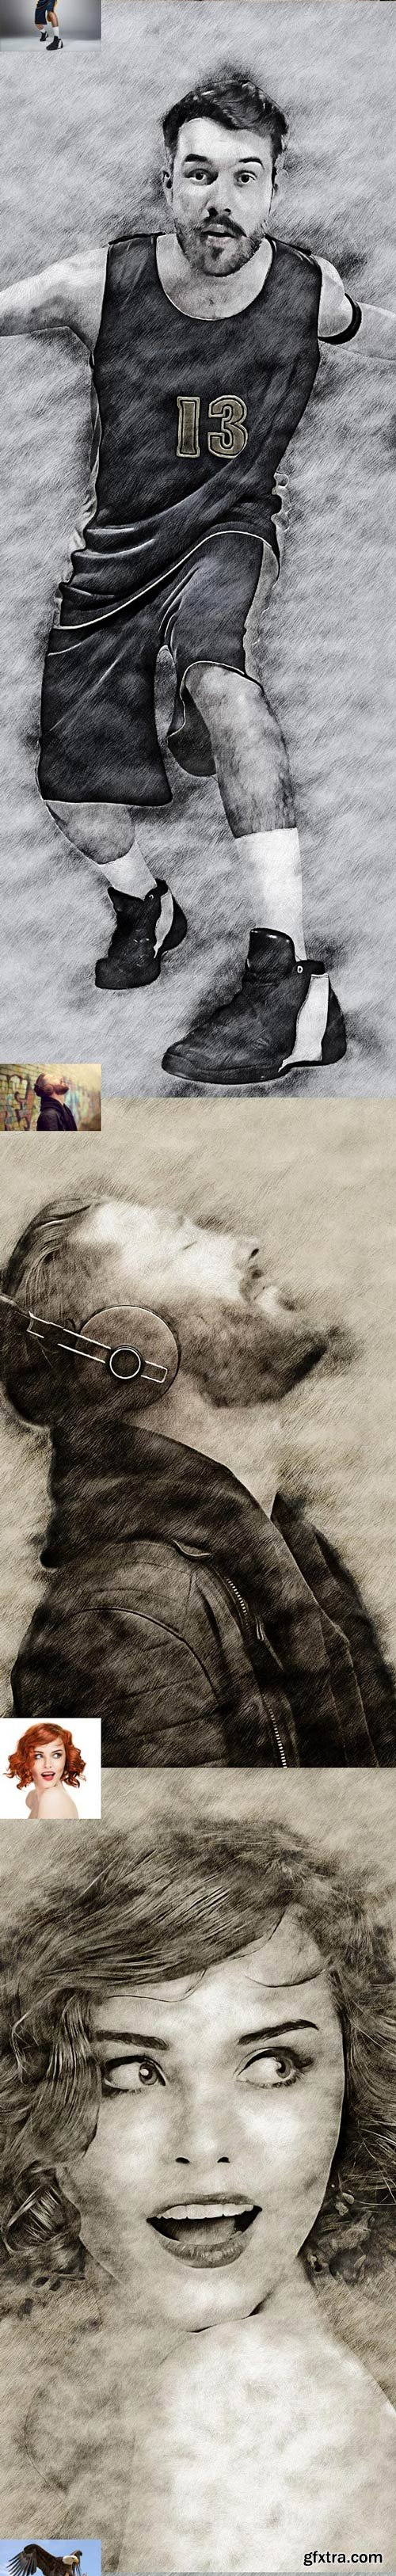 GraphicRiver - Light Sketch CS4+ Photoshop Action - 22100434